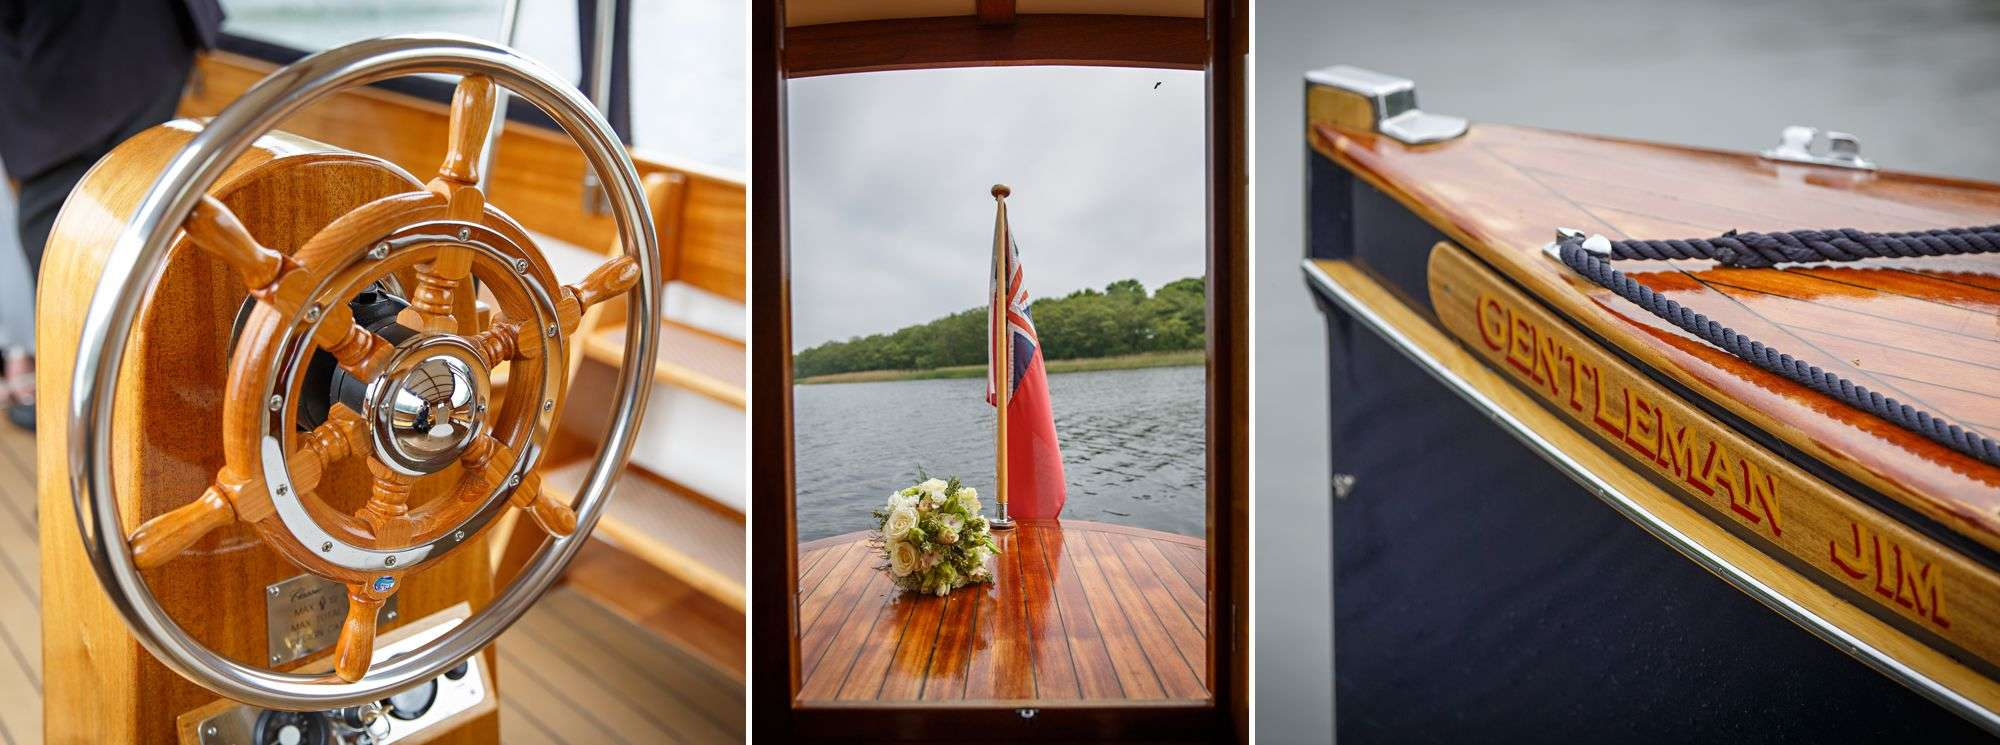 the-boathouse-ormesby-wedding-photography-020